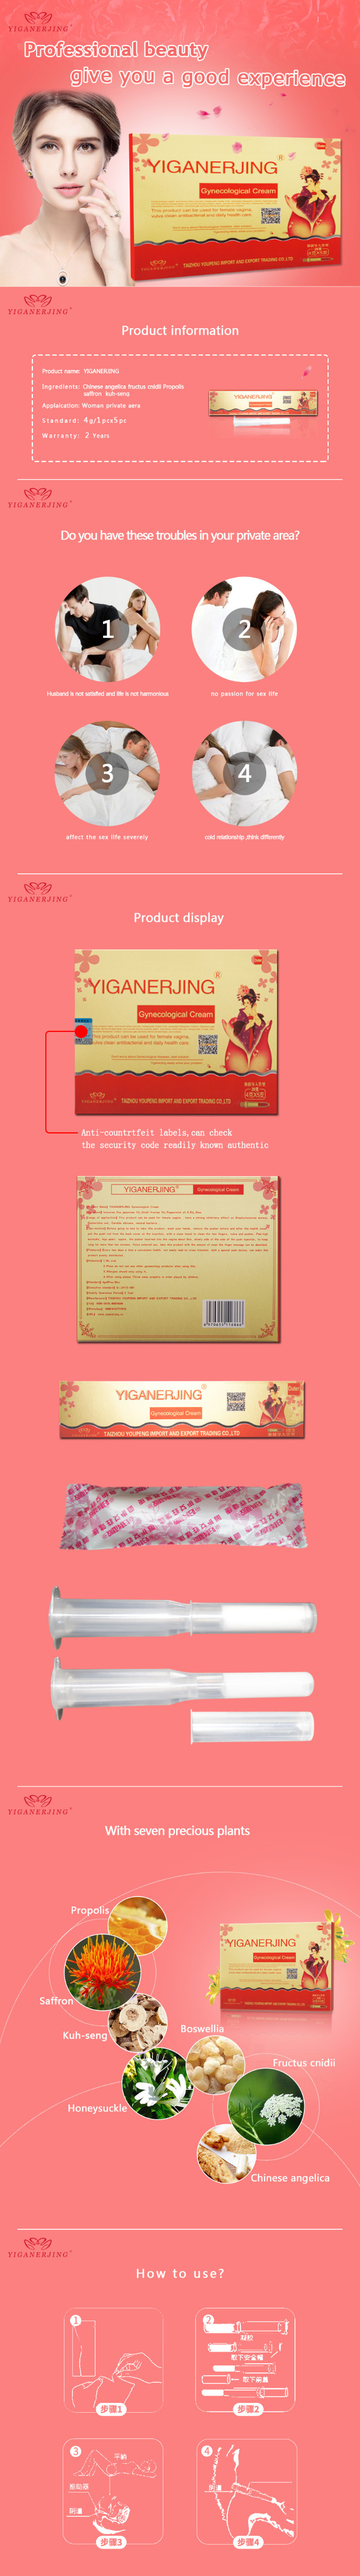 5pcs=1box Ytiganerjing Shrinking Gynecology Kill Bacteria Anti-inflammation Care Gel Lubricant Beauty & Health